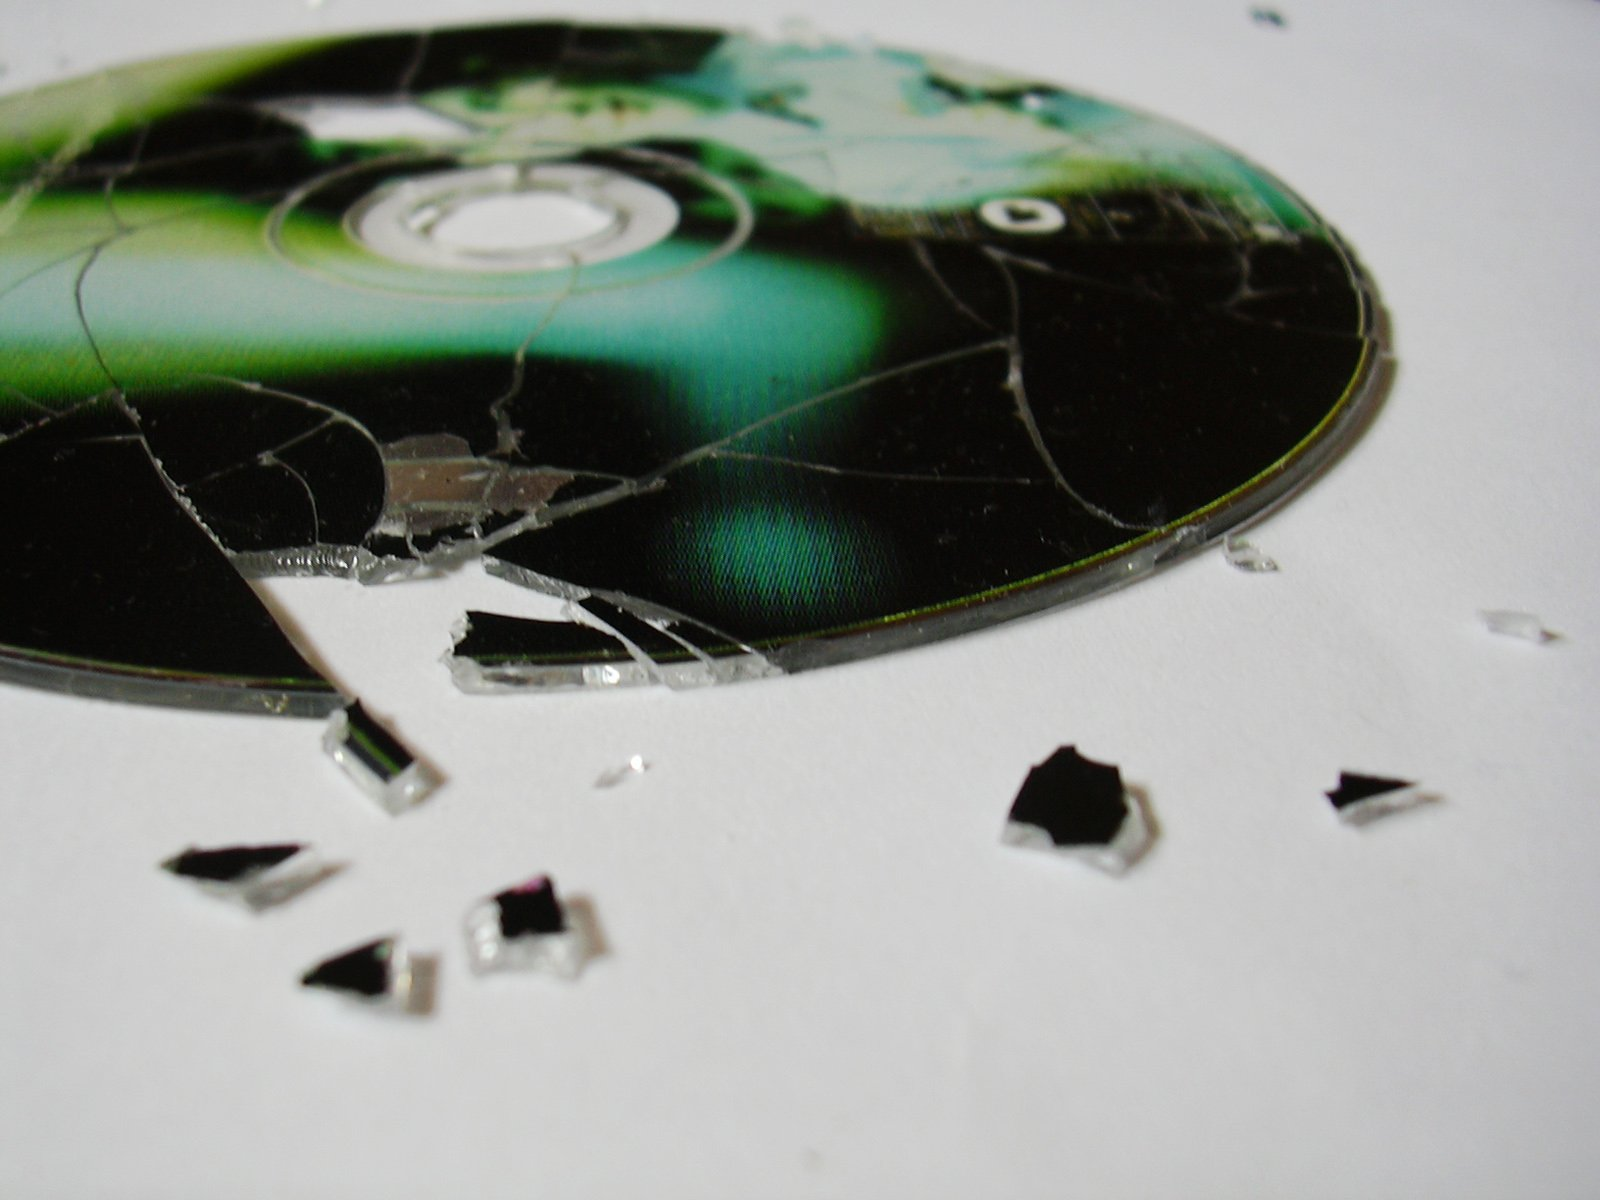 Rebuilding broken CD